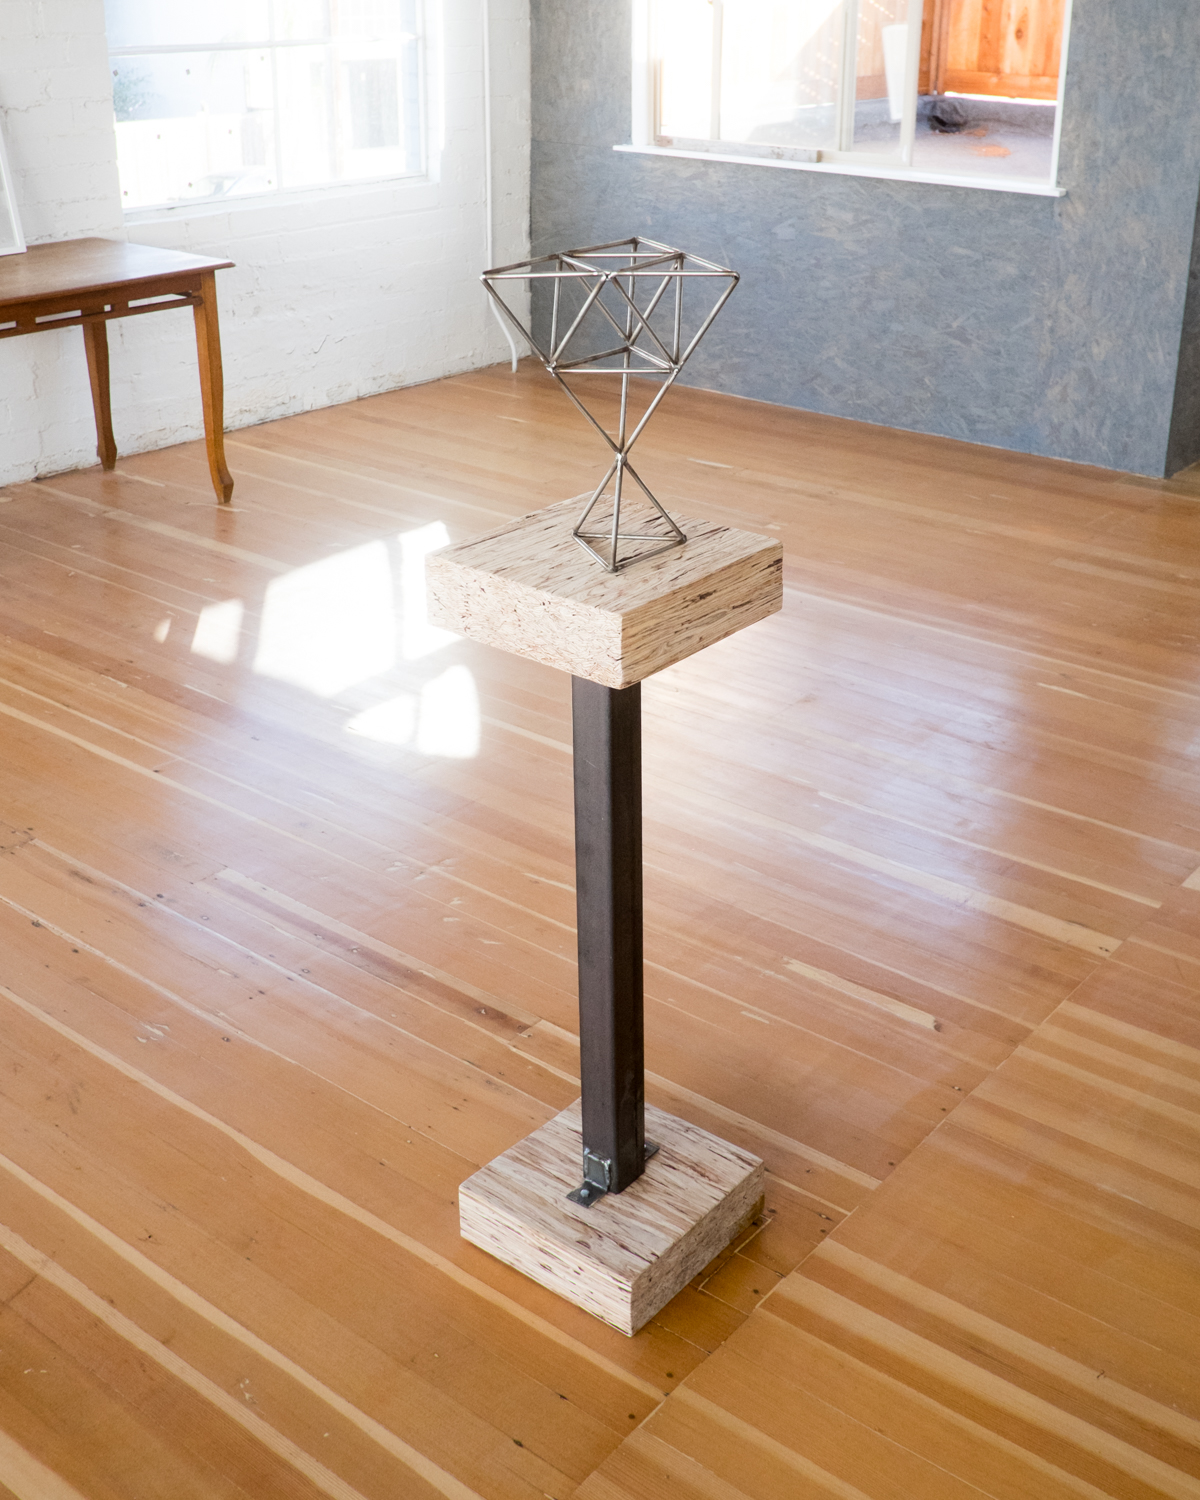 Metal work and pedestal by Cody